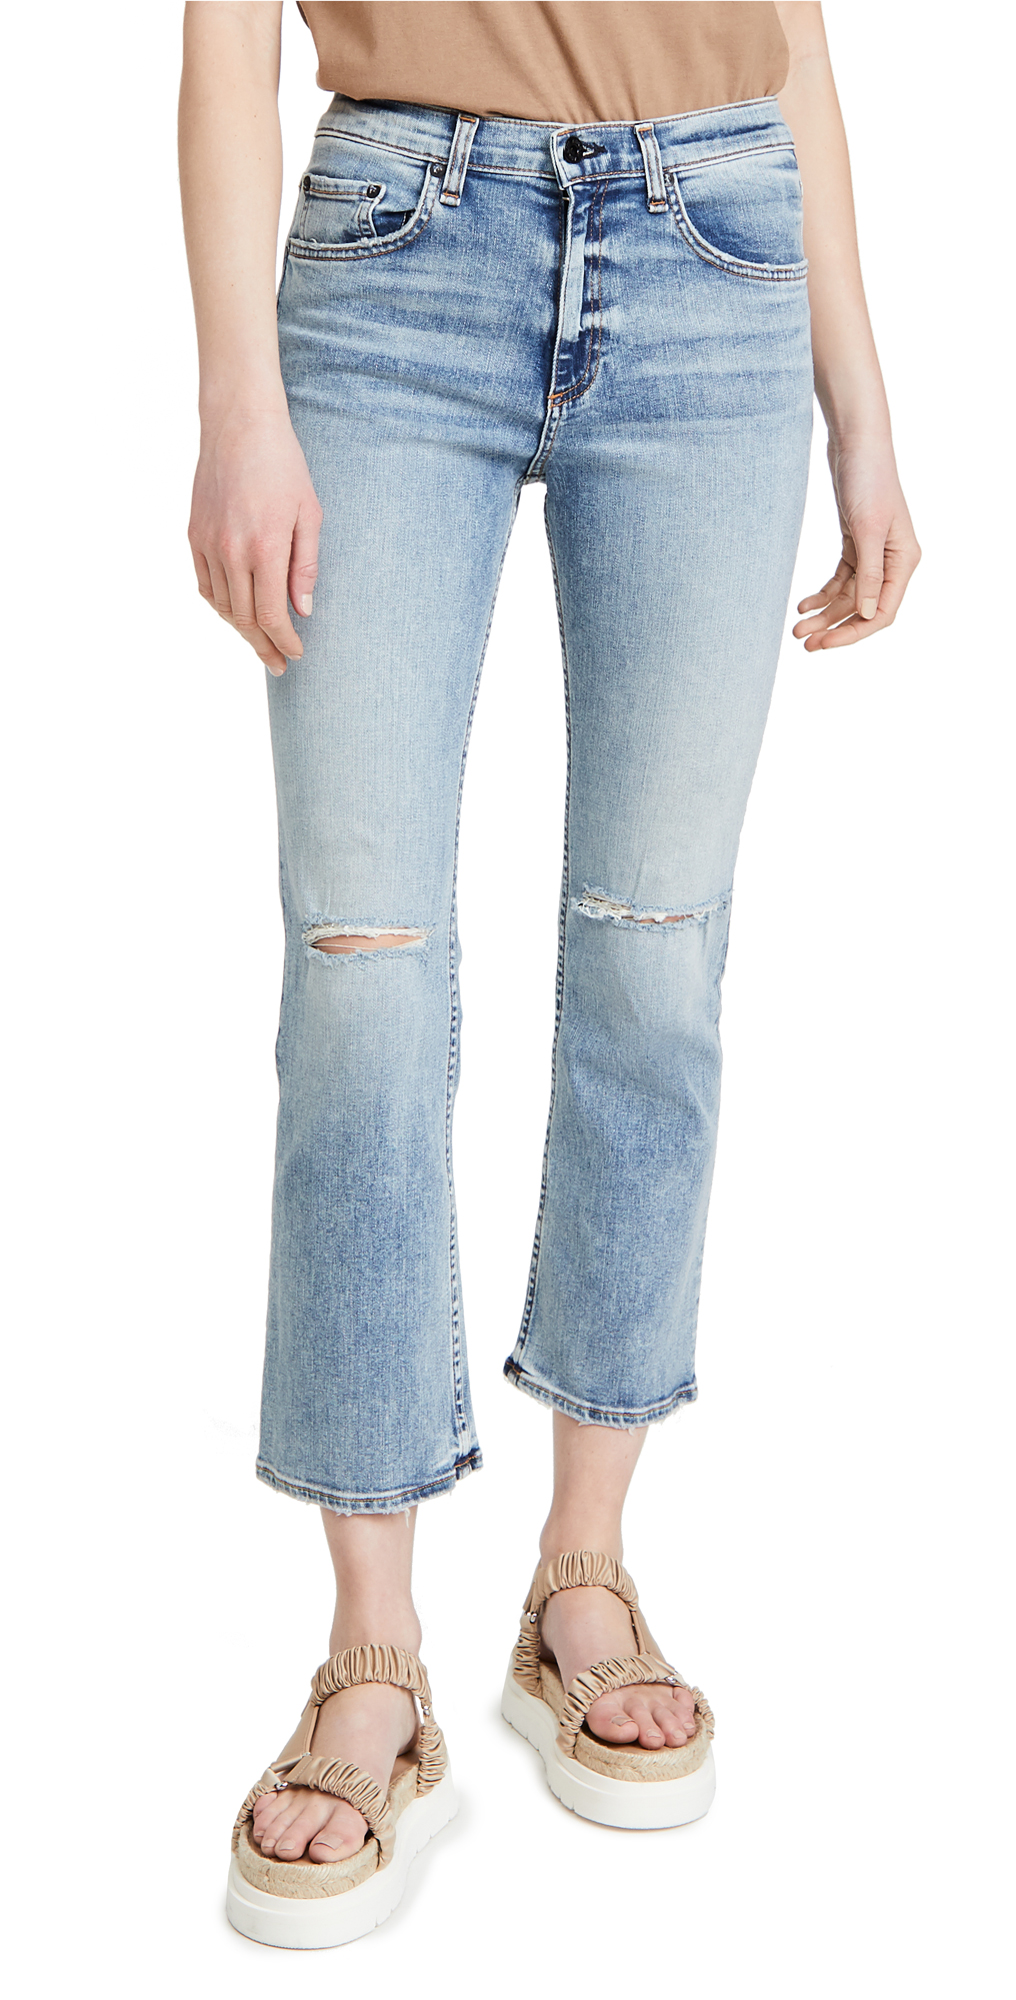 ASKK NY High Rise Crop Bootcut Jeans